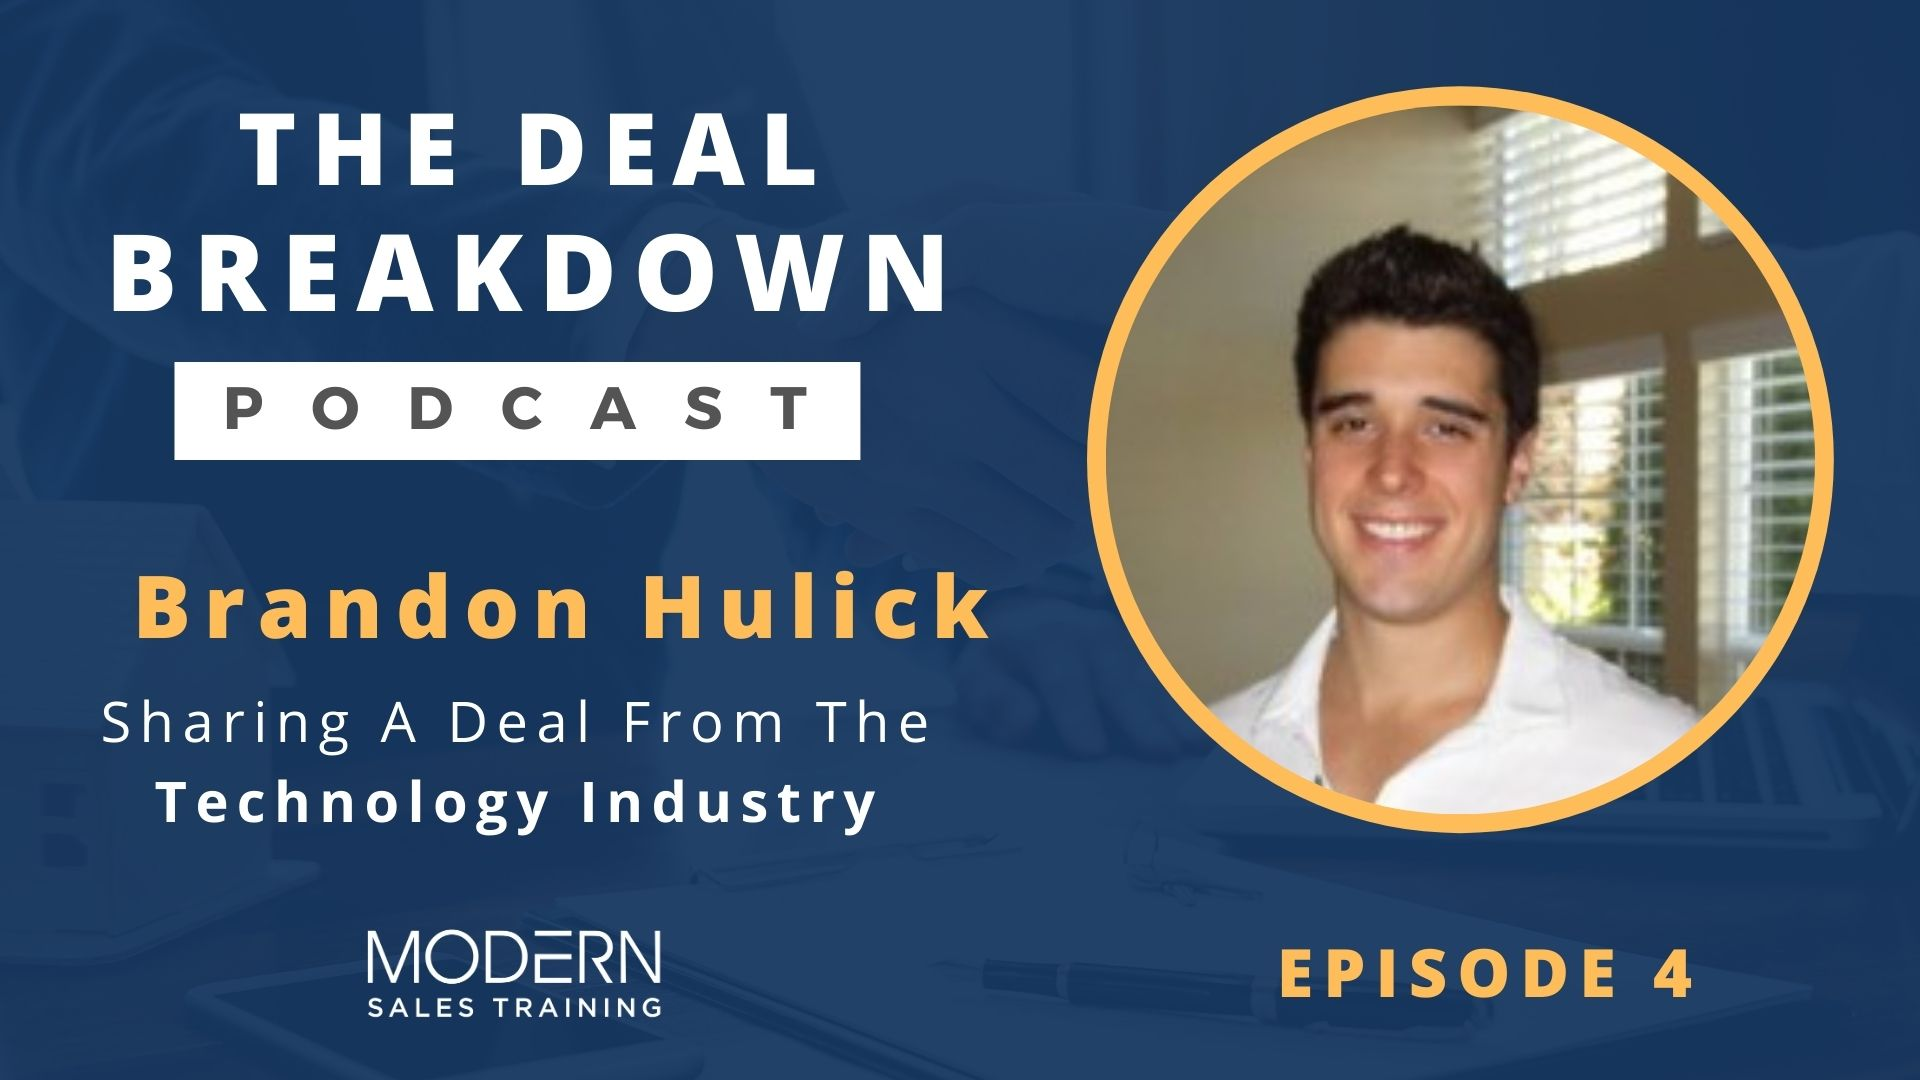 The-Deal-Breakdown-Podcast-Modern-Sales-Training-Brandon-Hulick